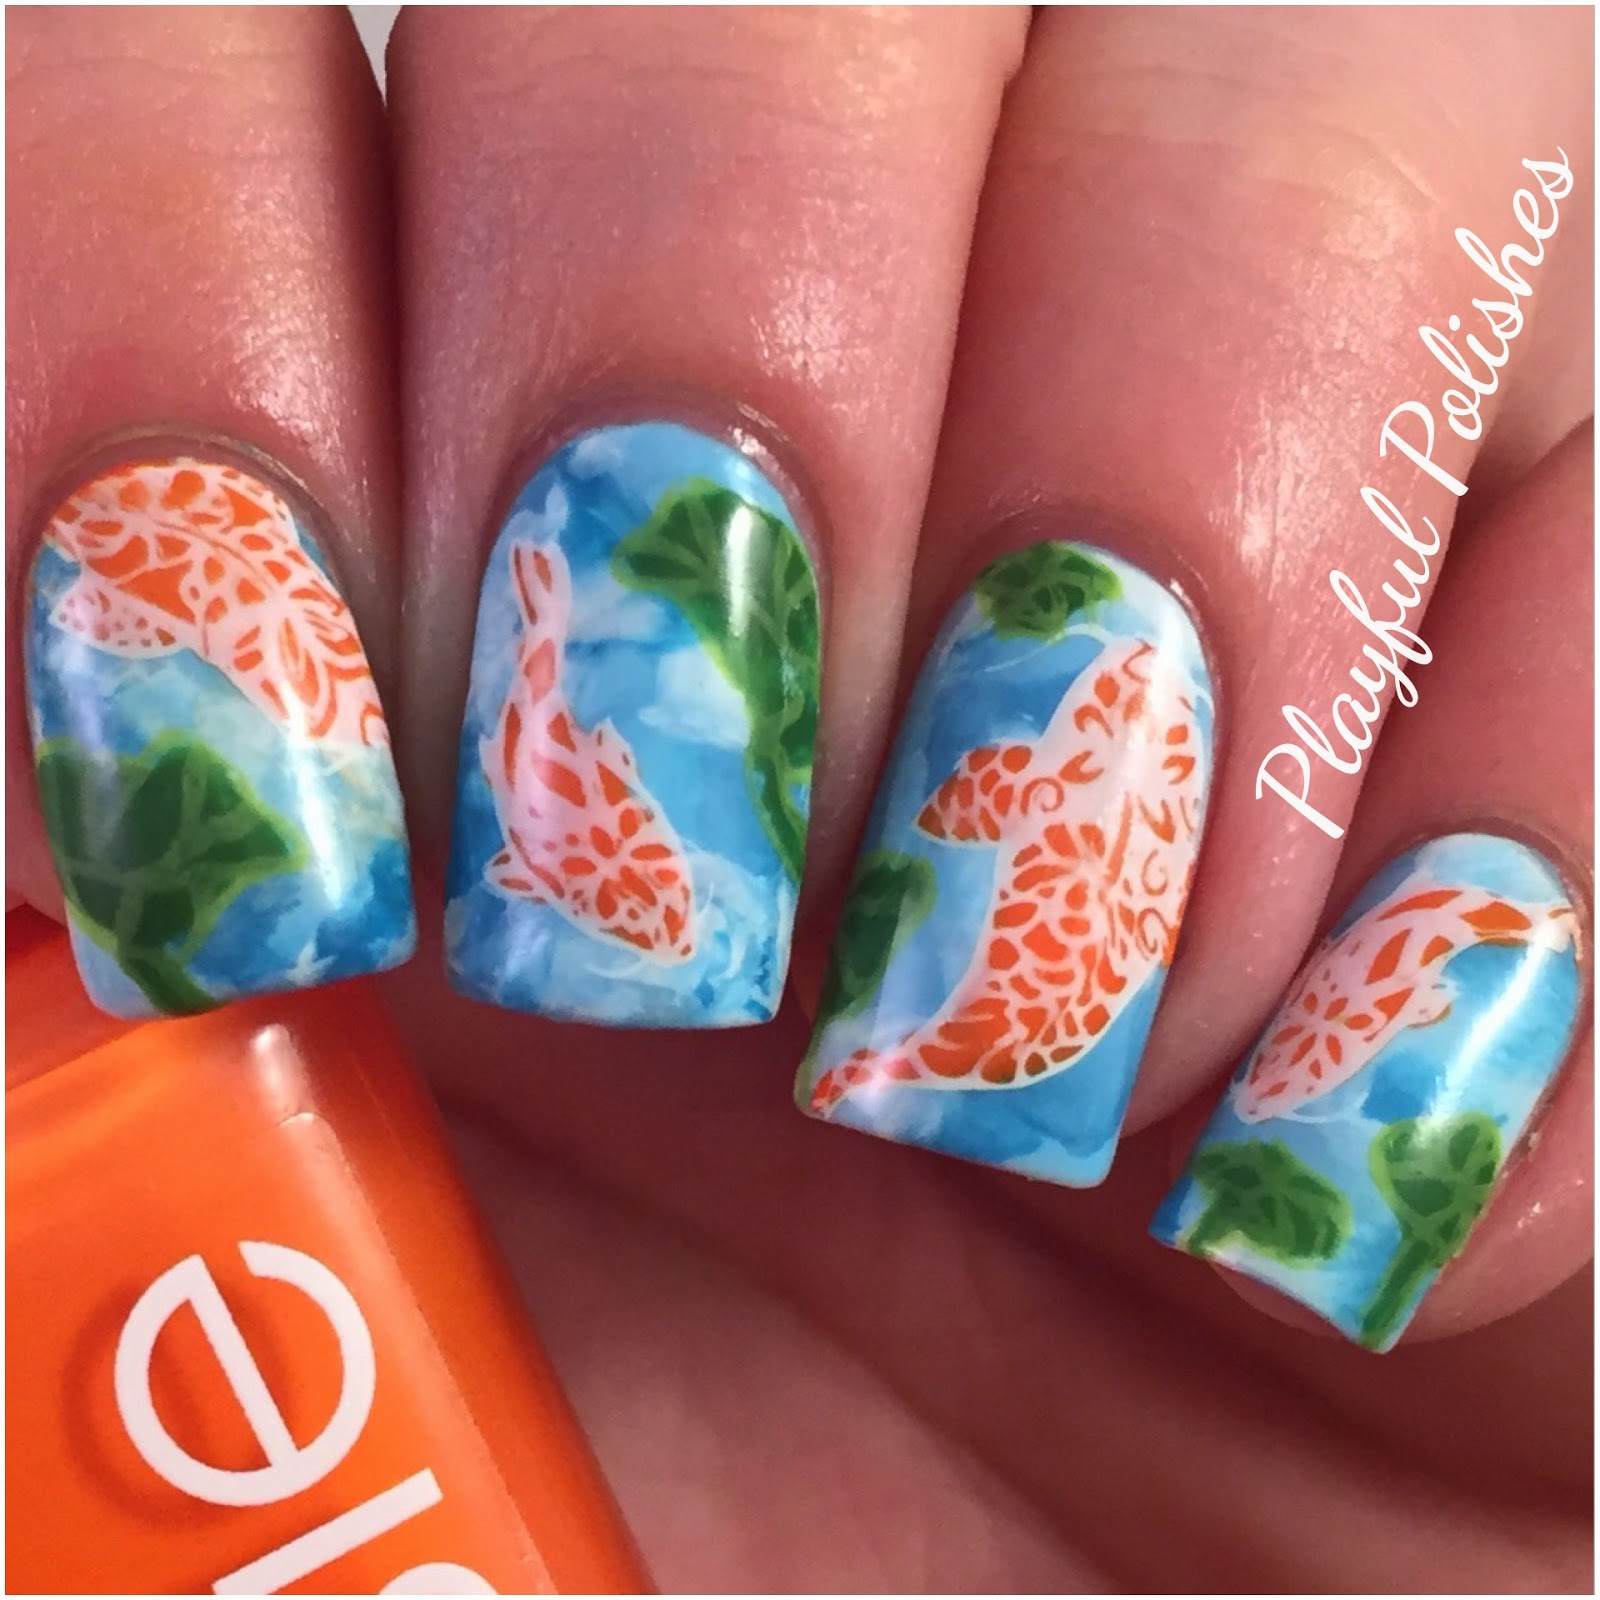 Playful Polishes: ADVANCED STAMPING NAIL ART/KOI FISH NAIL ART